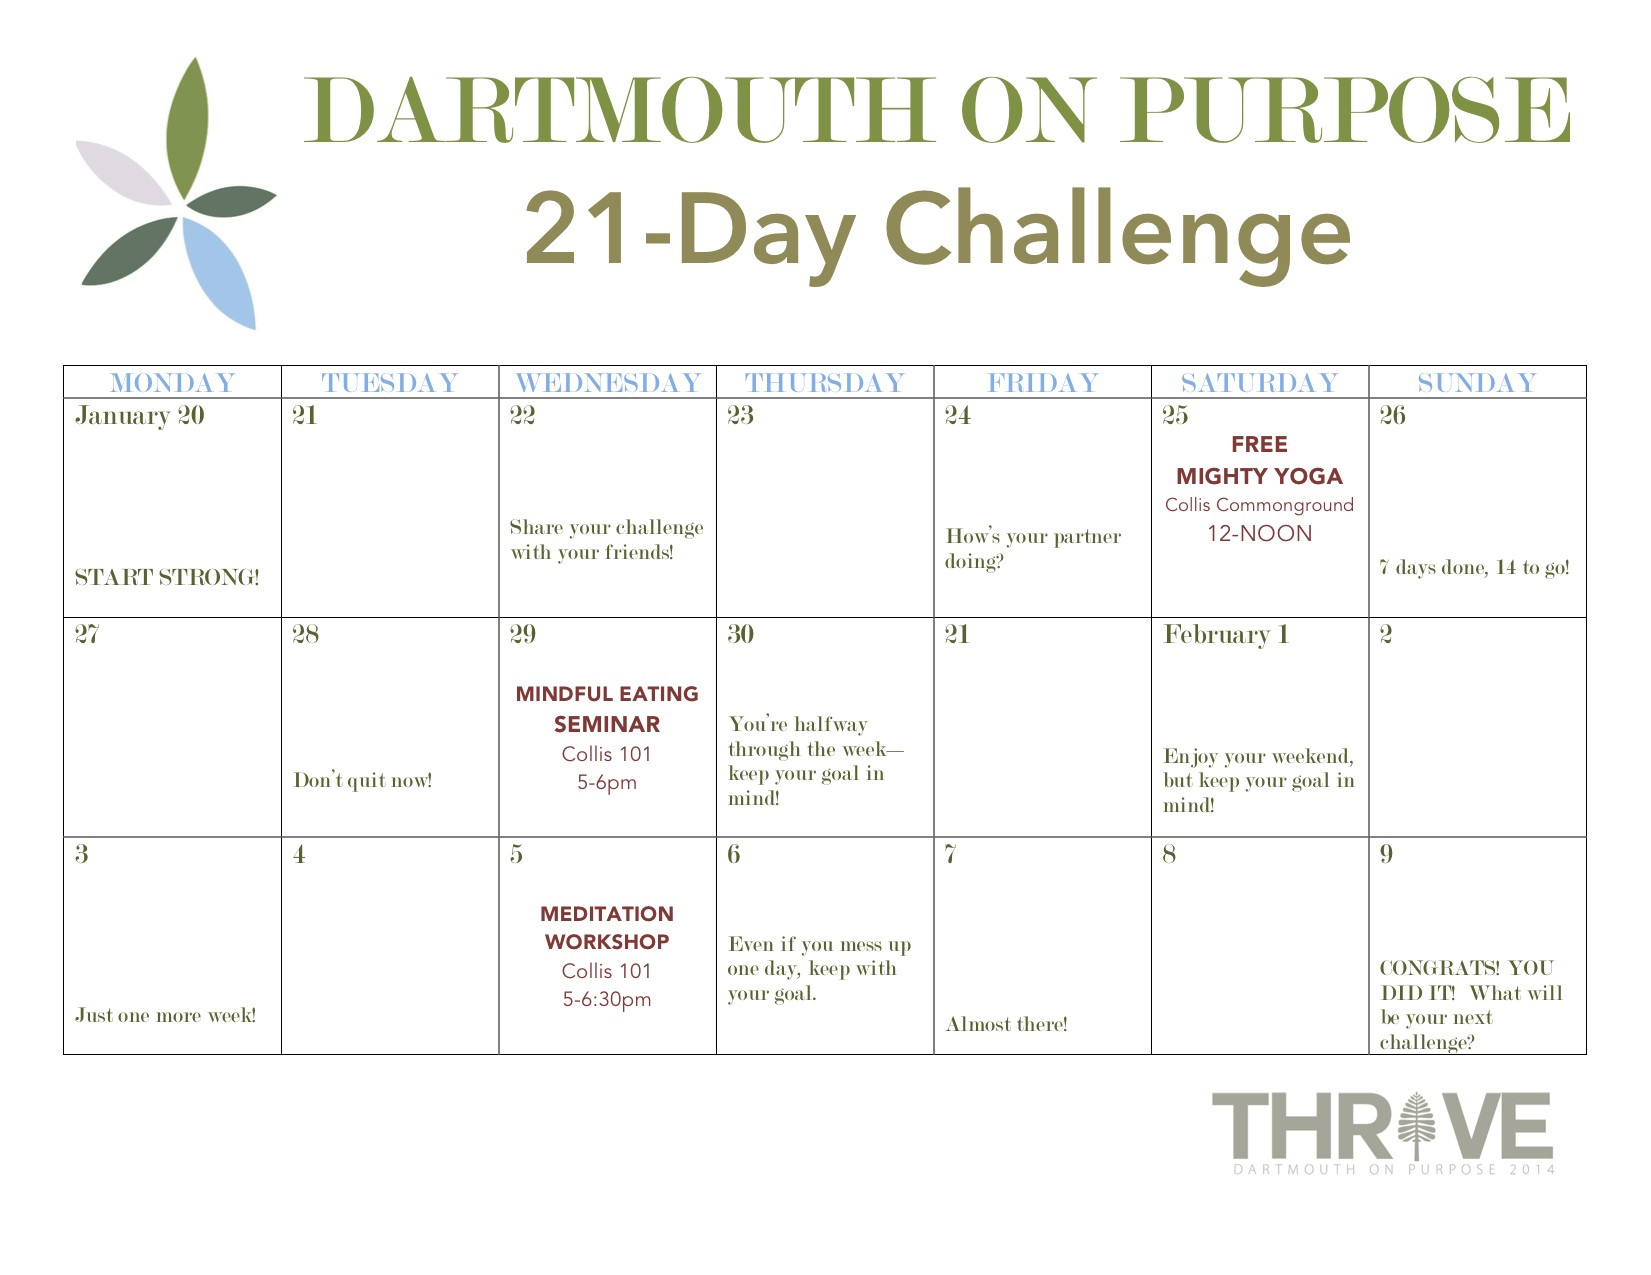 14W 21 Day Challenge Dartmouth On Purpose